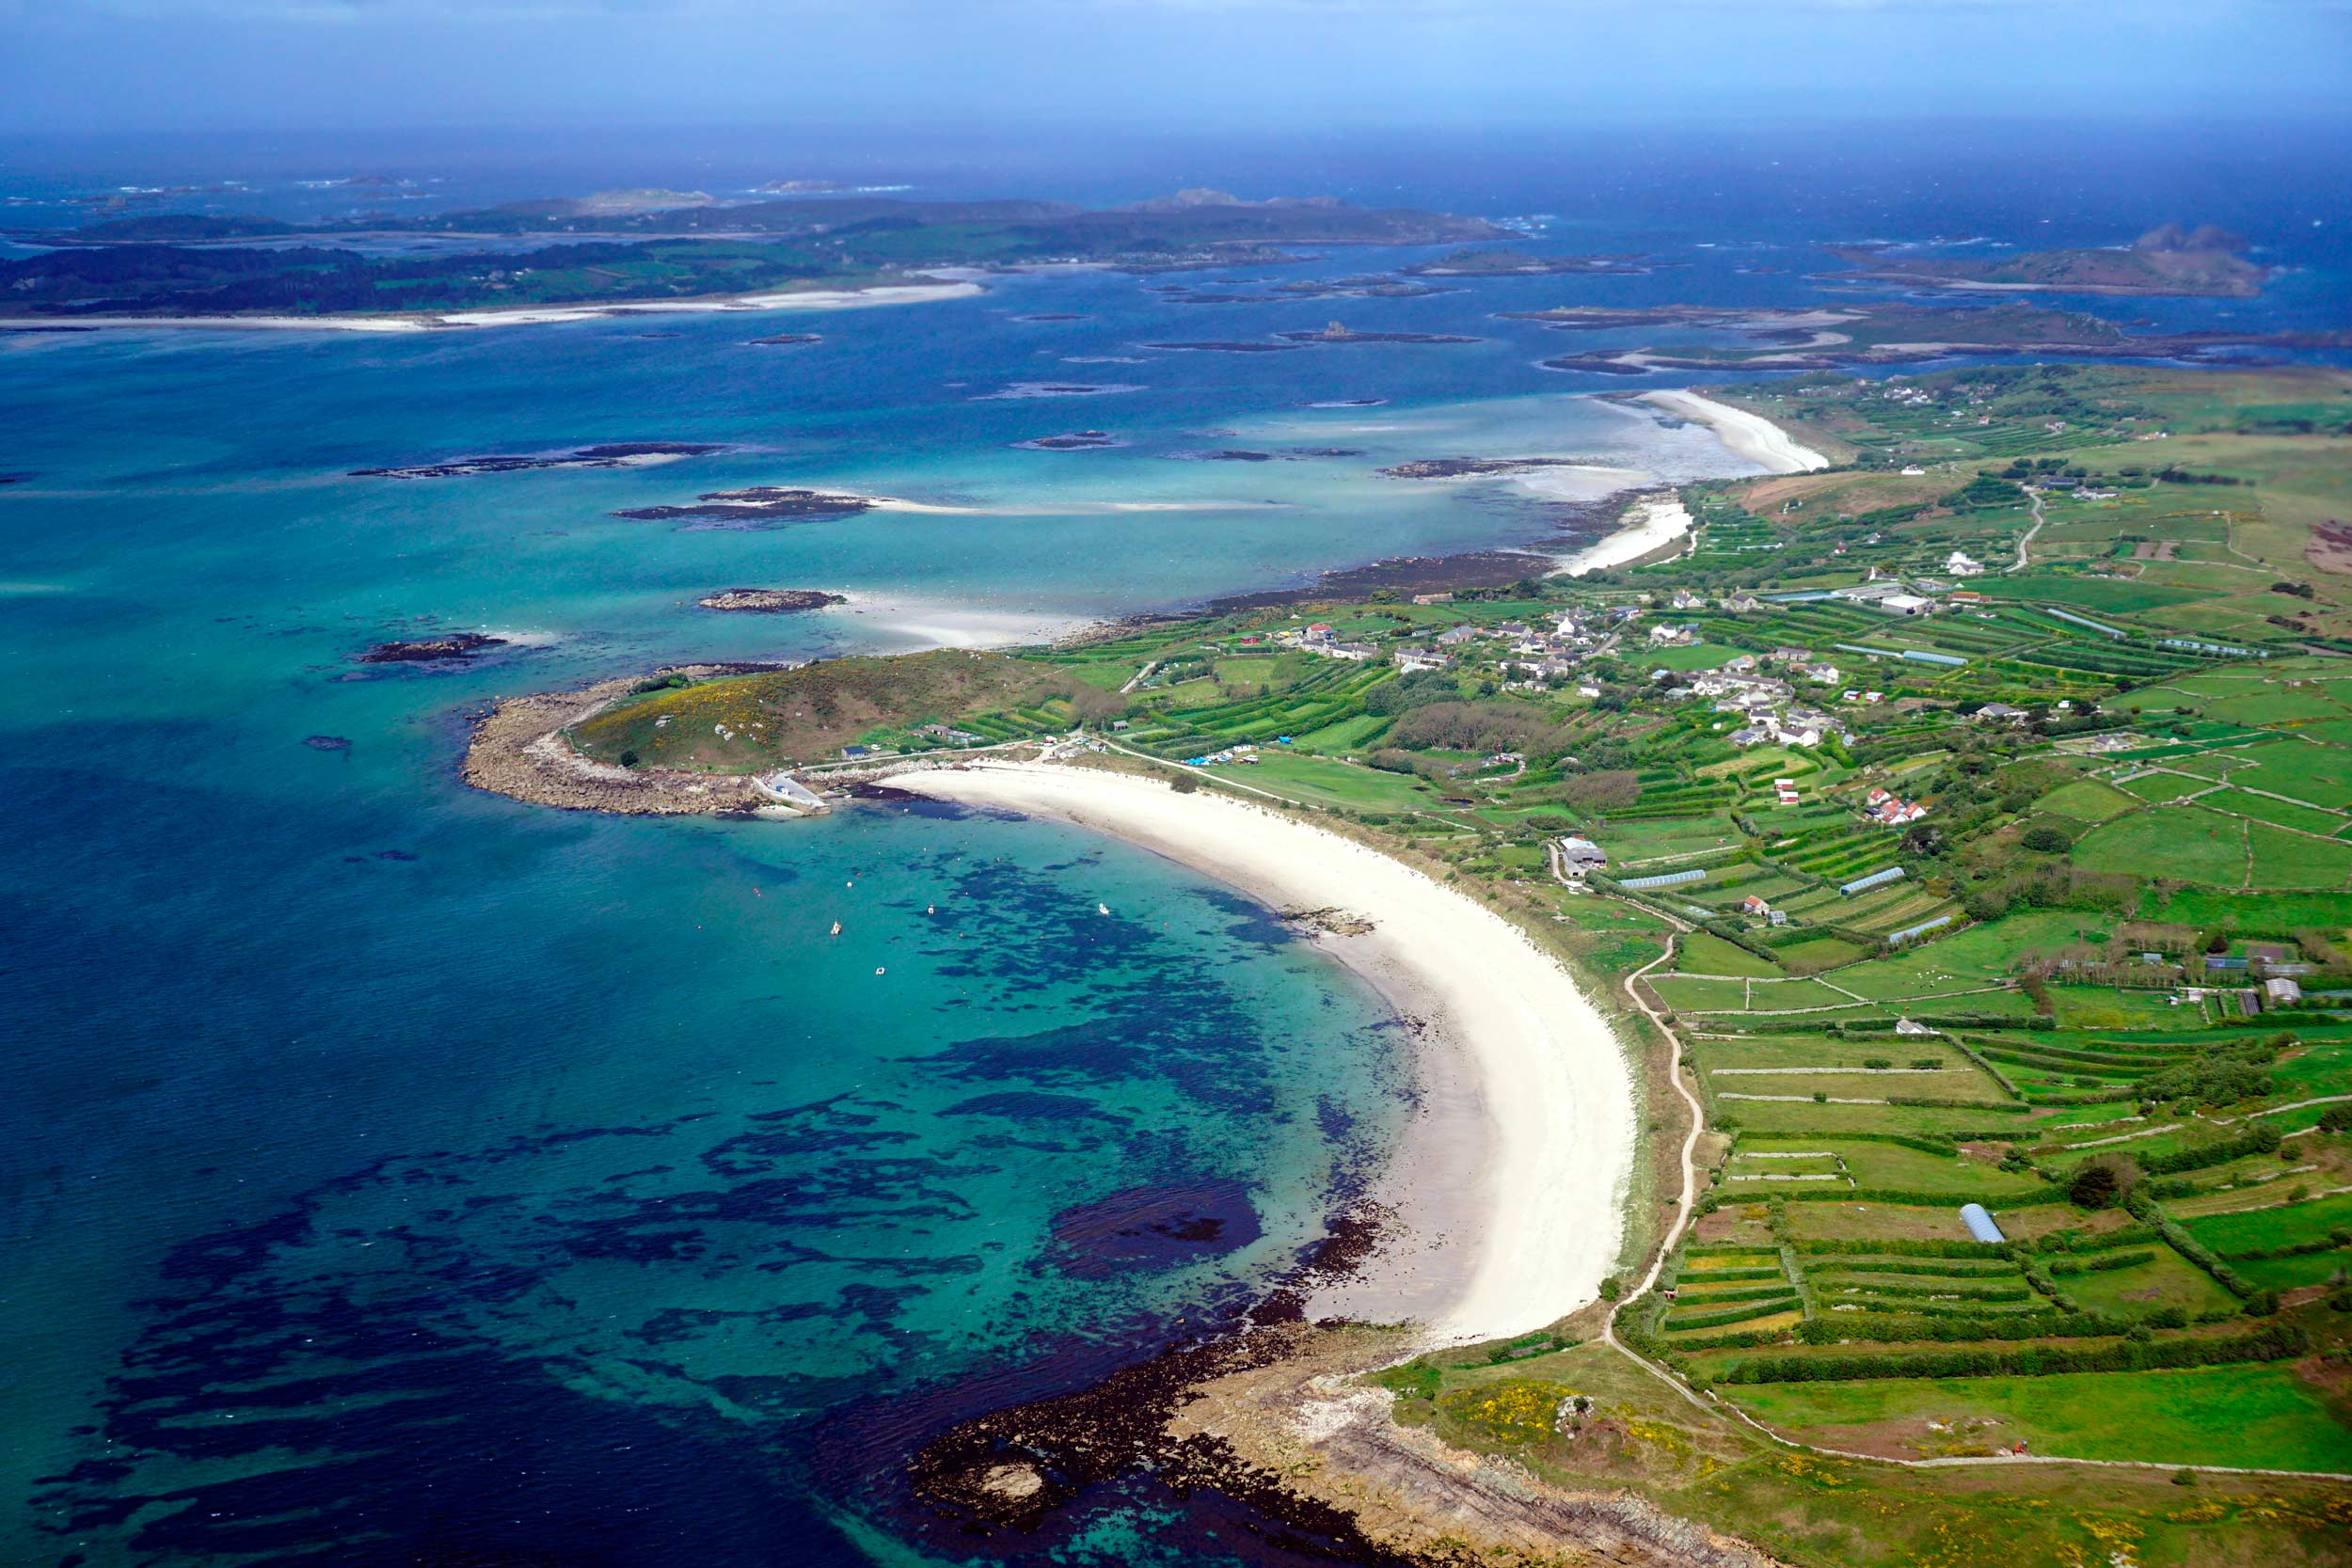 St Martin's Lower Town Beach, Isles of Scilly, England  (Stephen Rees/Shutterstock)